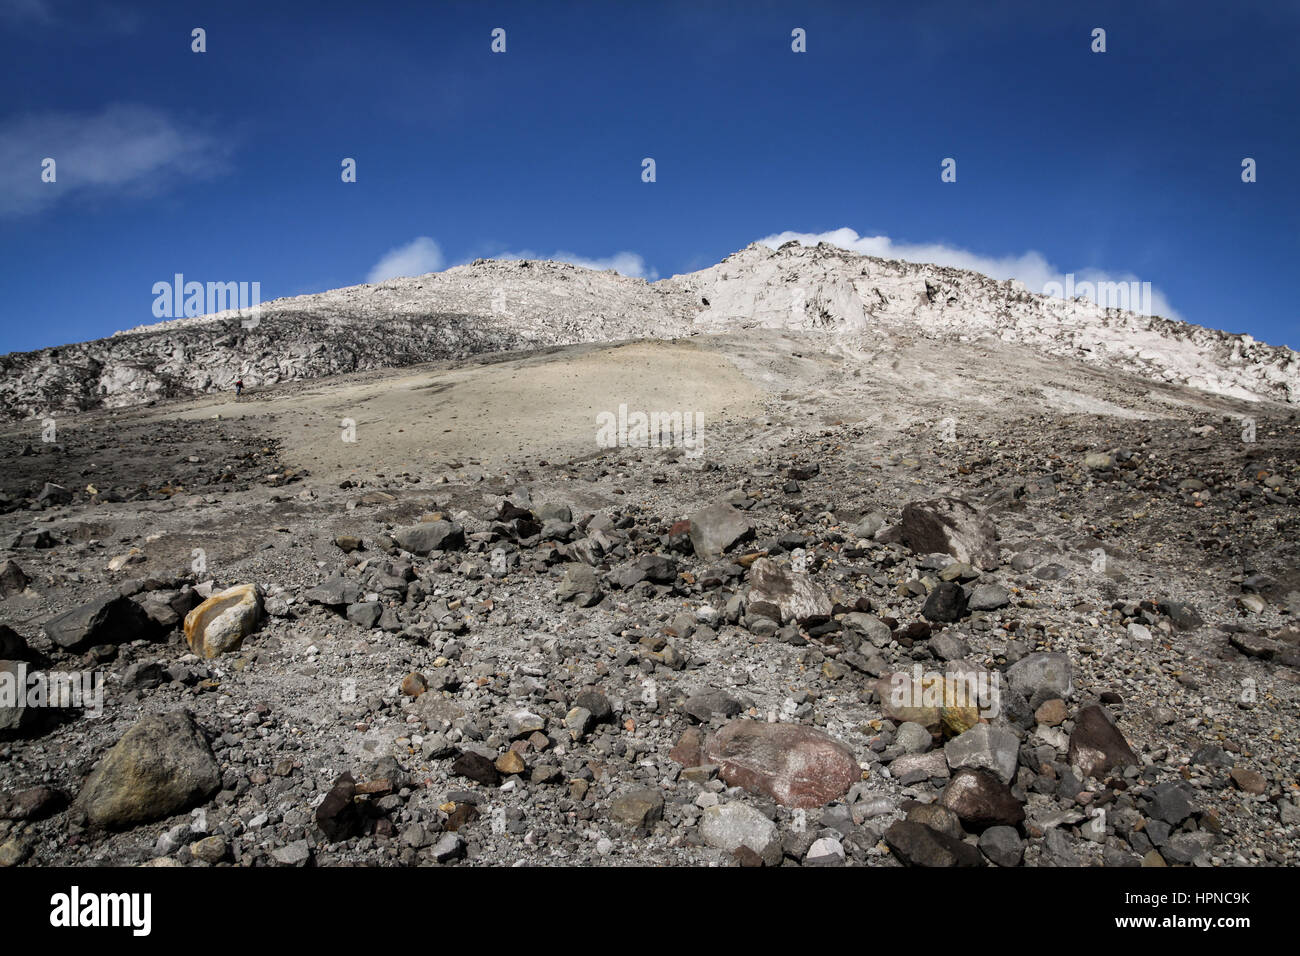 Looking up towards the Mount Merapi volcanic crater edge from Pasar Bubrah at the start of the final ascent. - Stock Image